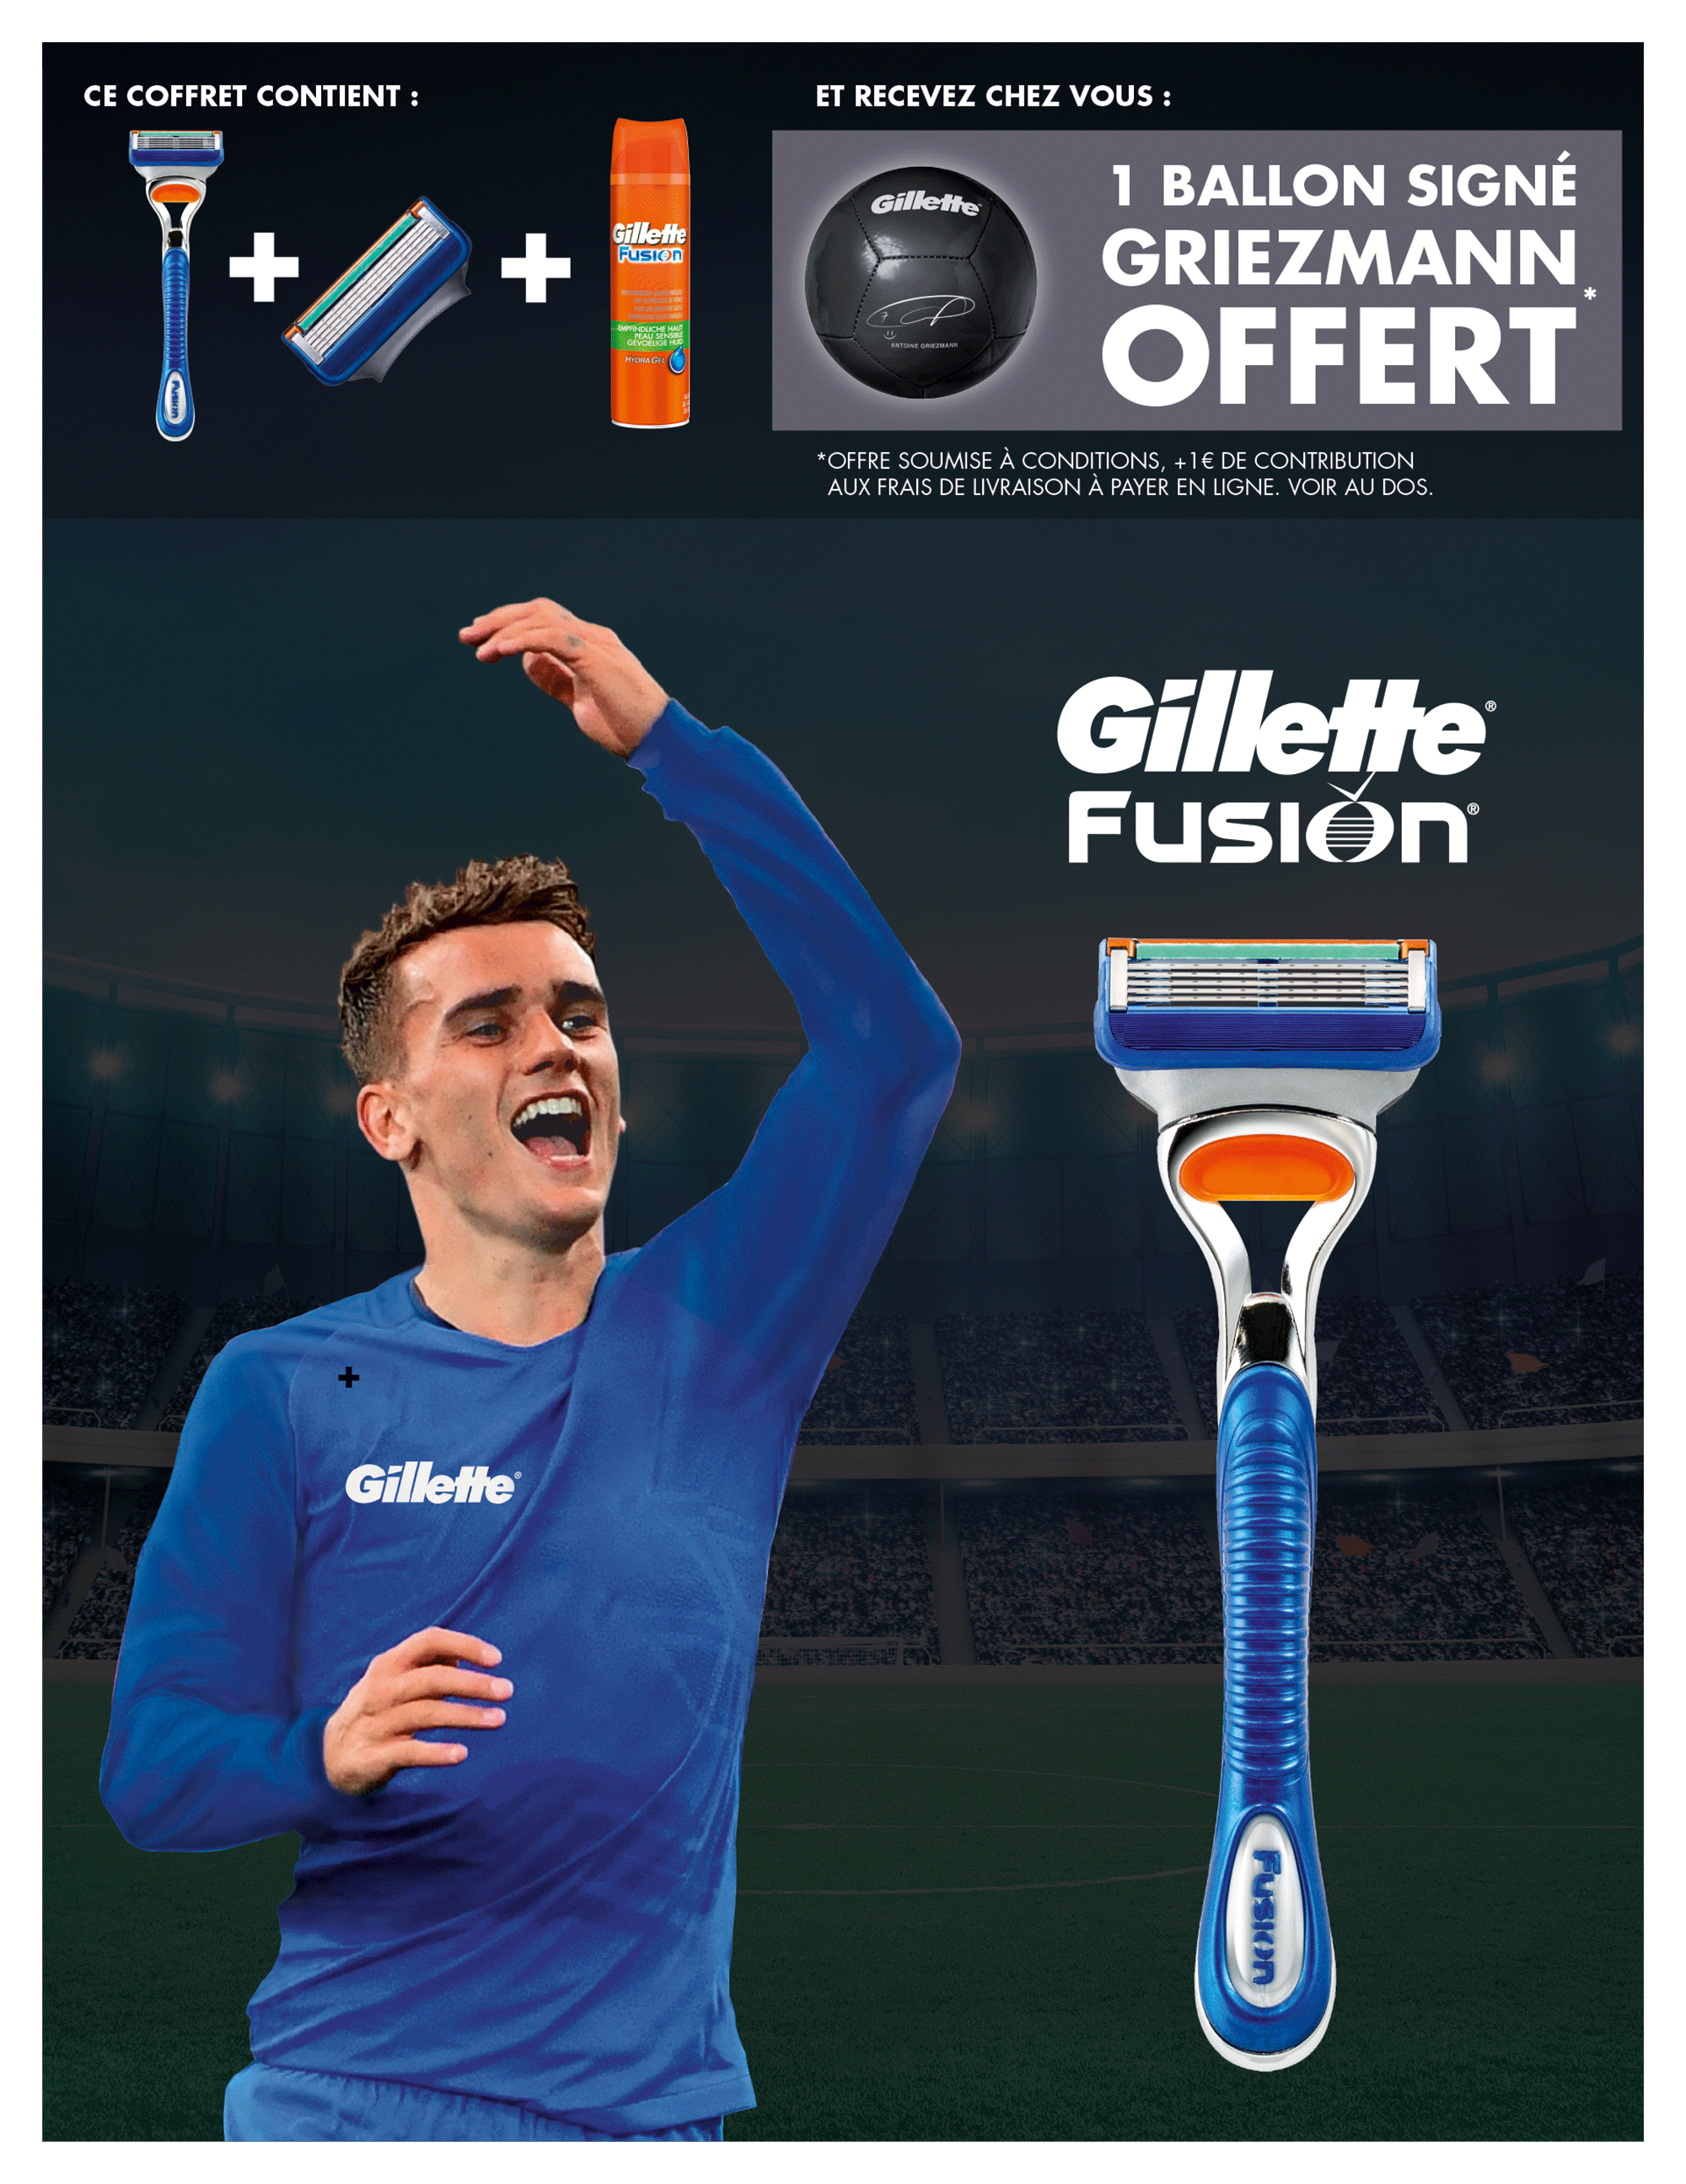 voici les 2 publicit s vid os de gillette avec antoine griezmann. Black Bedroom Furniture Sets. Home Design Ideas